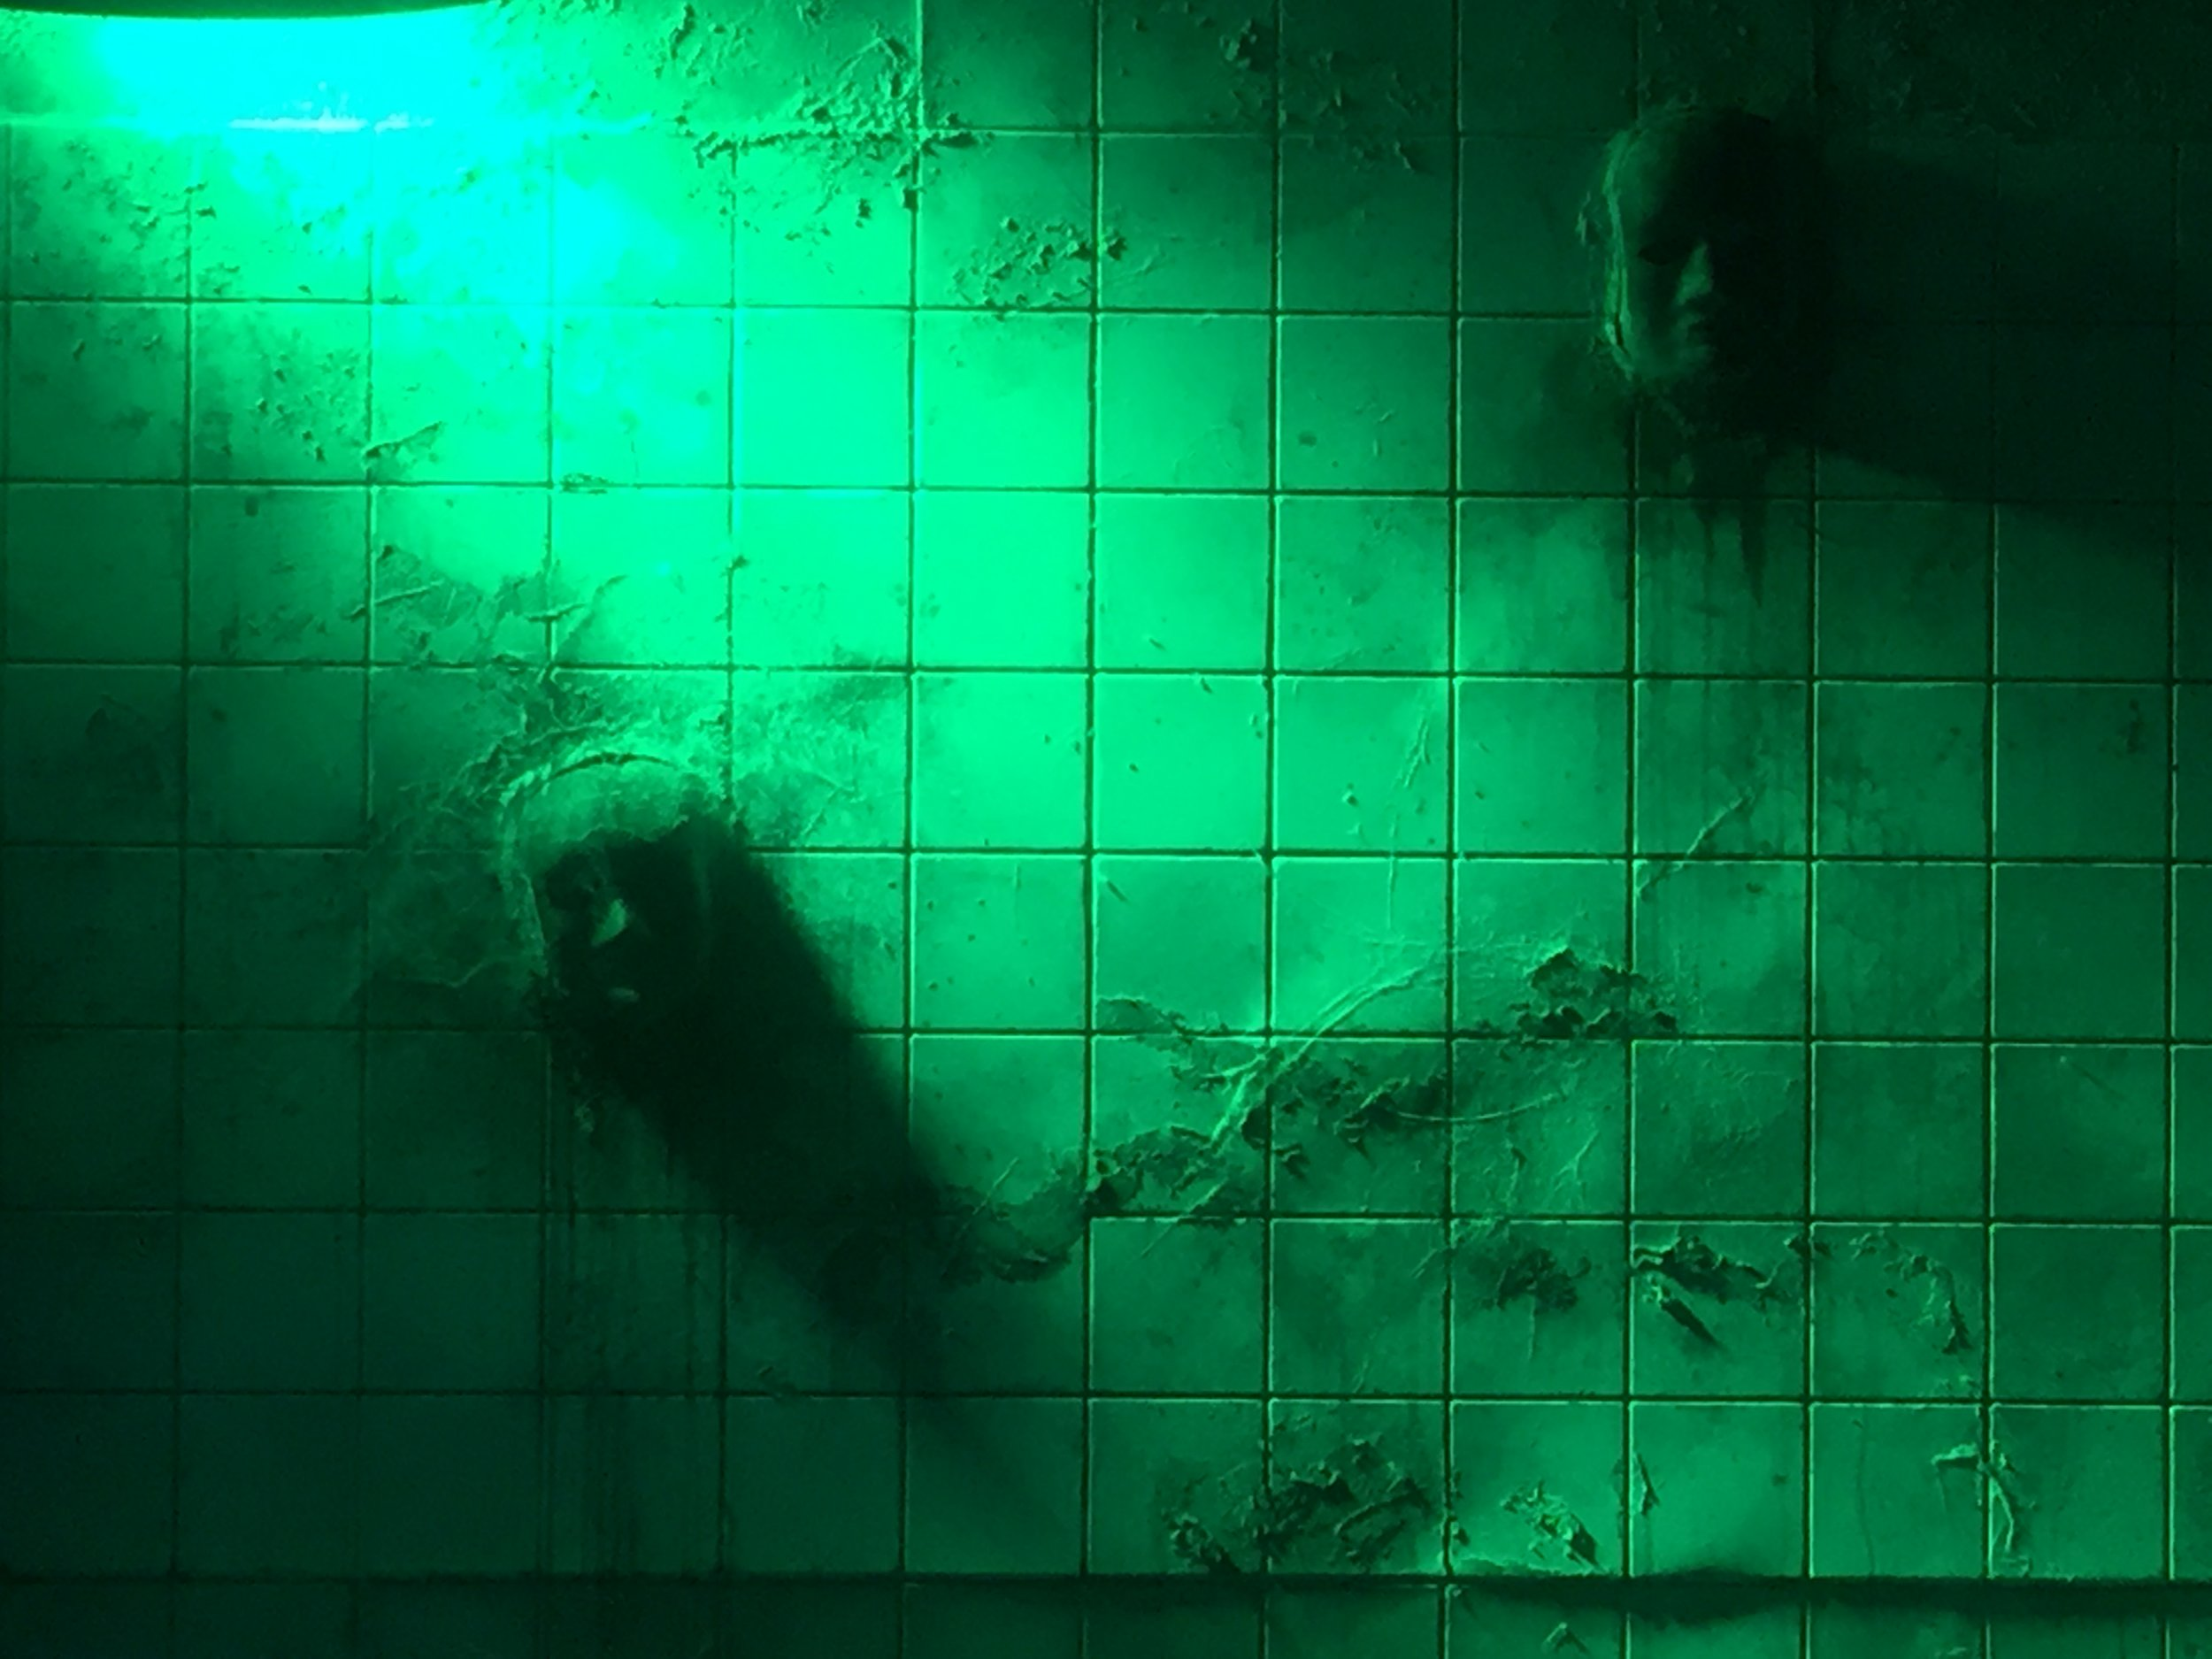 Faces coming out of the wall lit in blue and green.